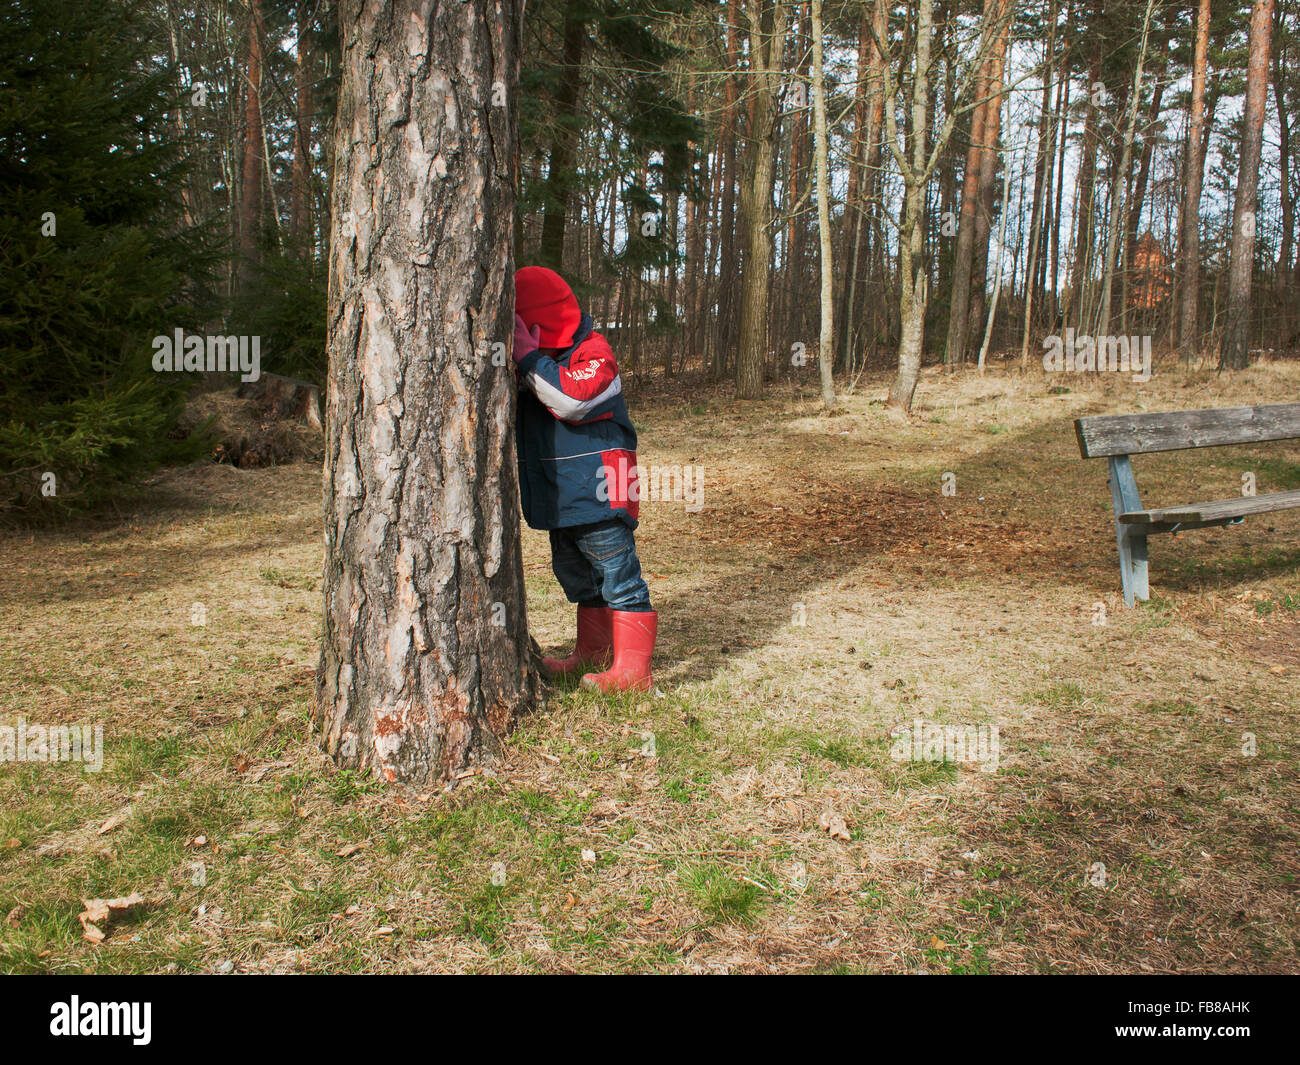 Sweden, Smaland, Horn, Boy (4-5) playing seek and hide amidst trees - Stock Image